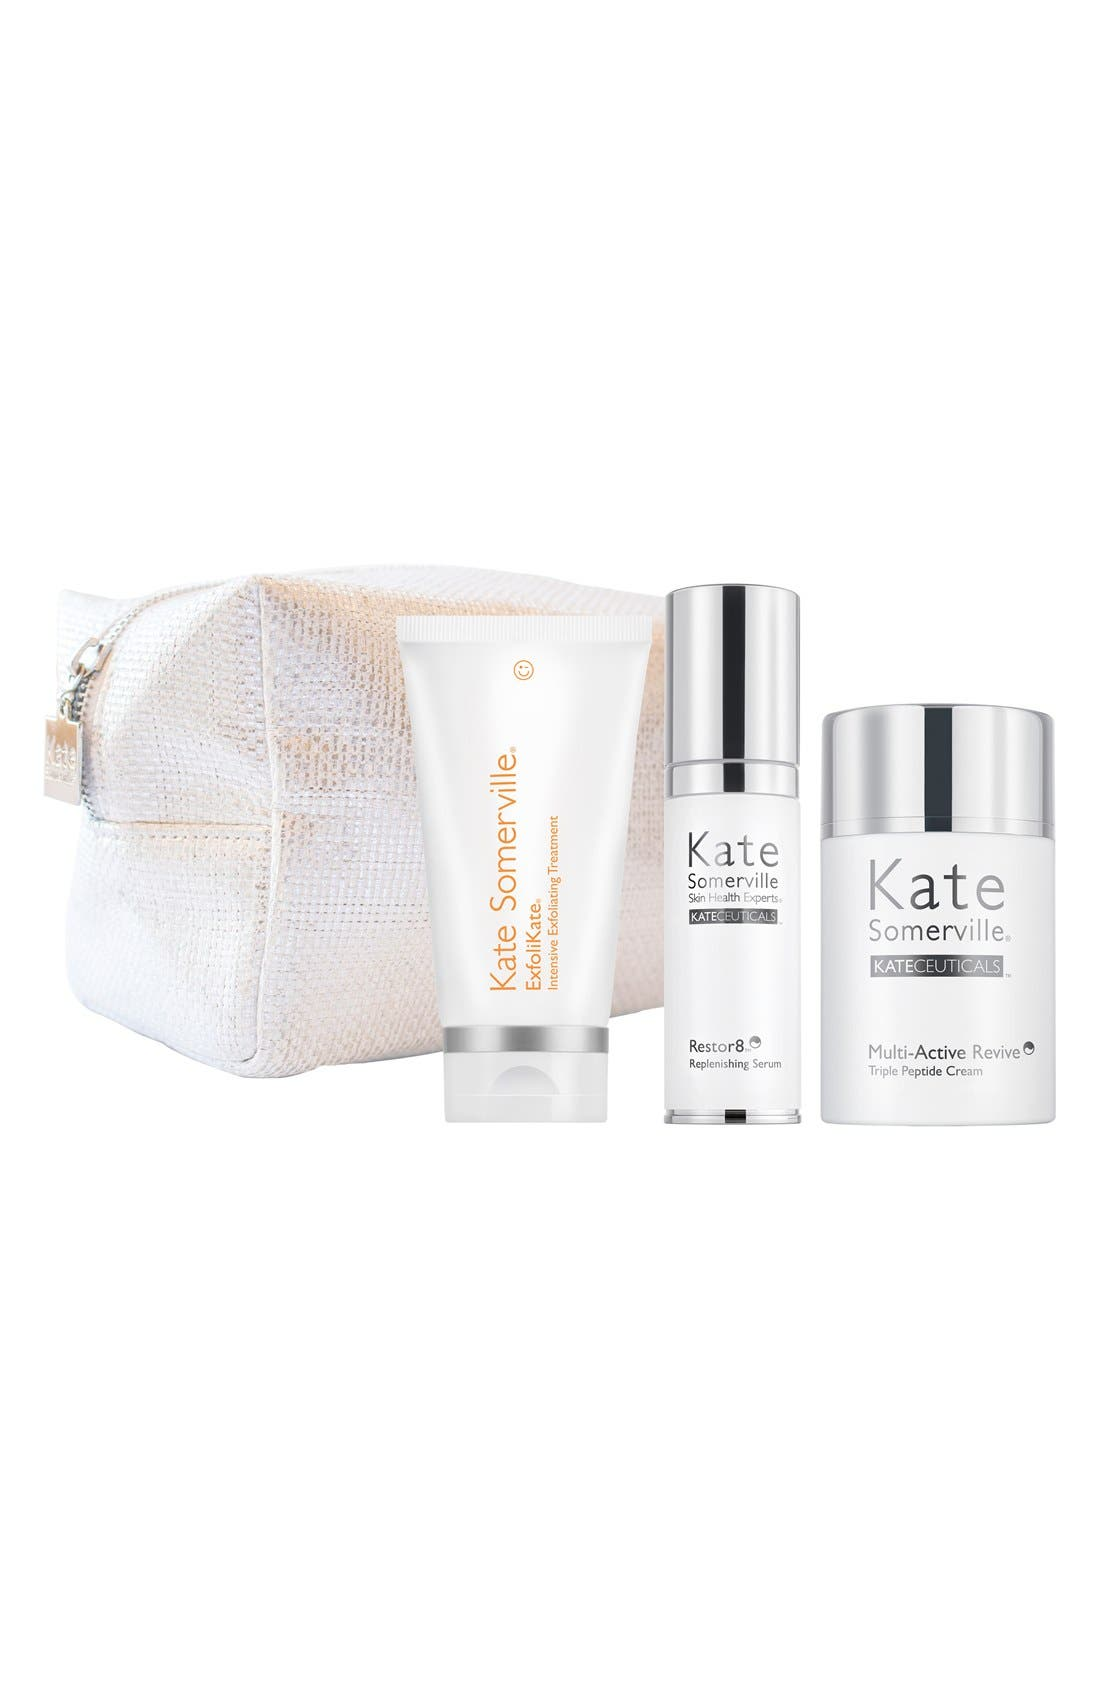 Kate Somerville® 'Youthful Radiance' Set ($430 Value)